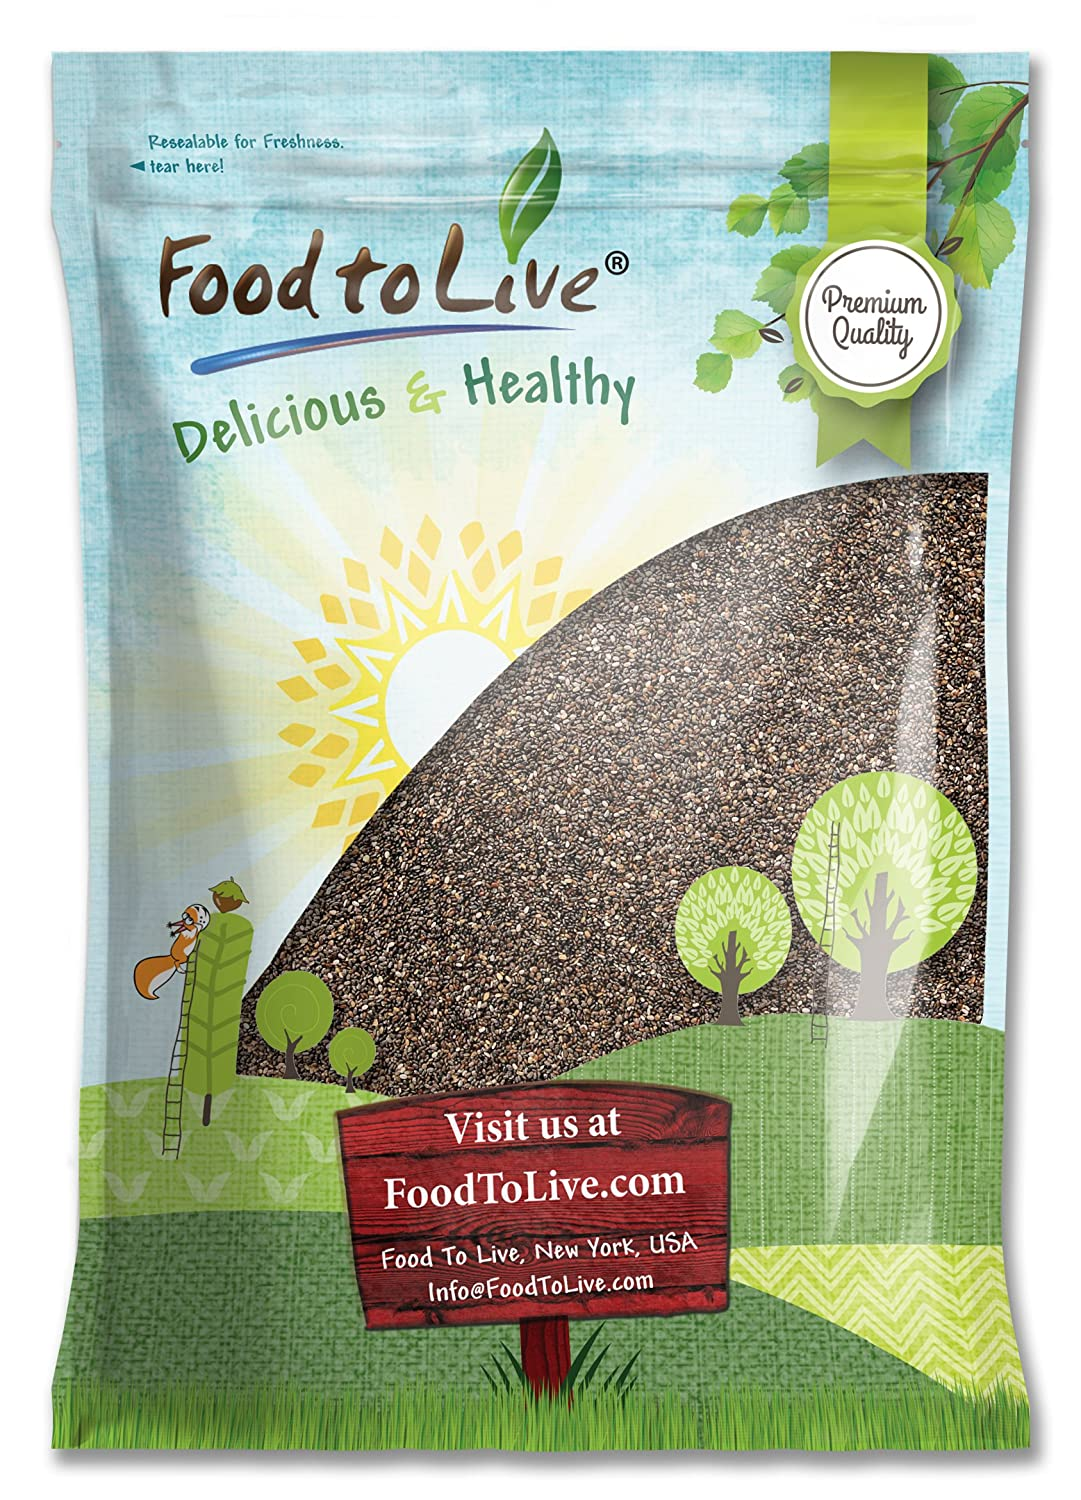 Food to Live Las semillas de chía (Kosher) 9.1 Kg: Amazon.es: Alimentación y bebidas